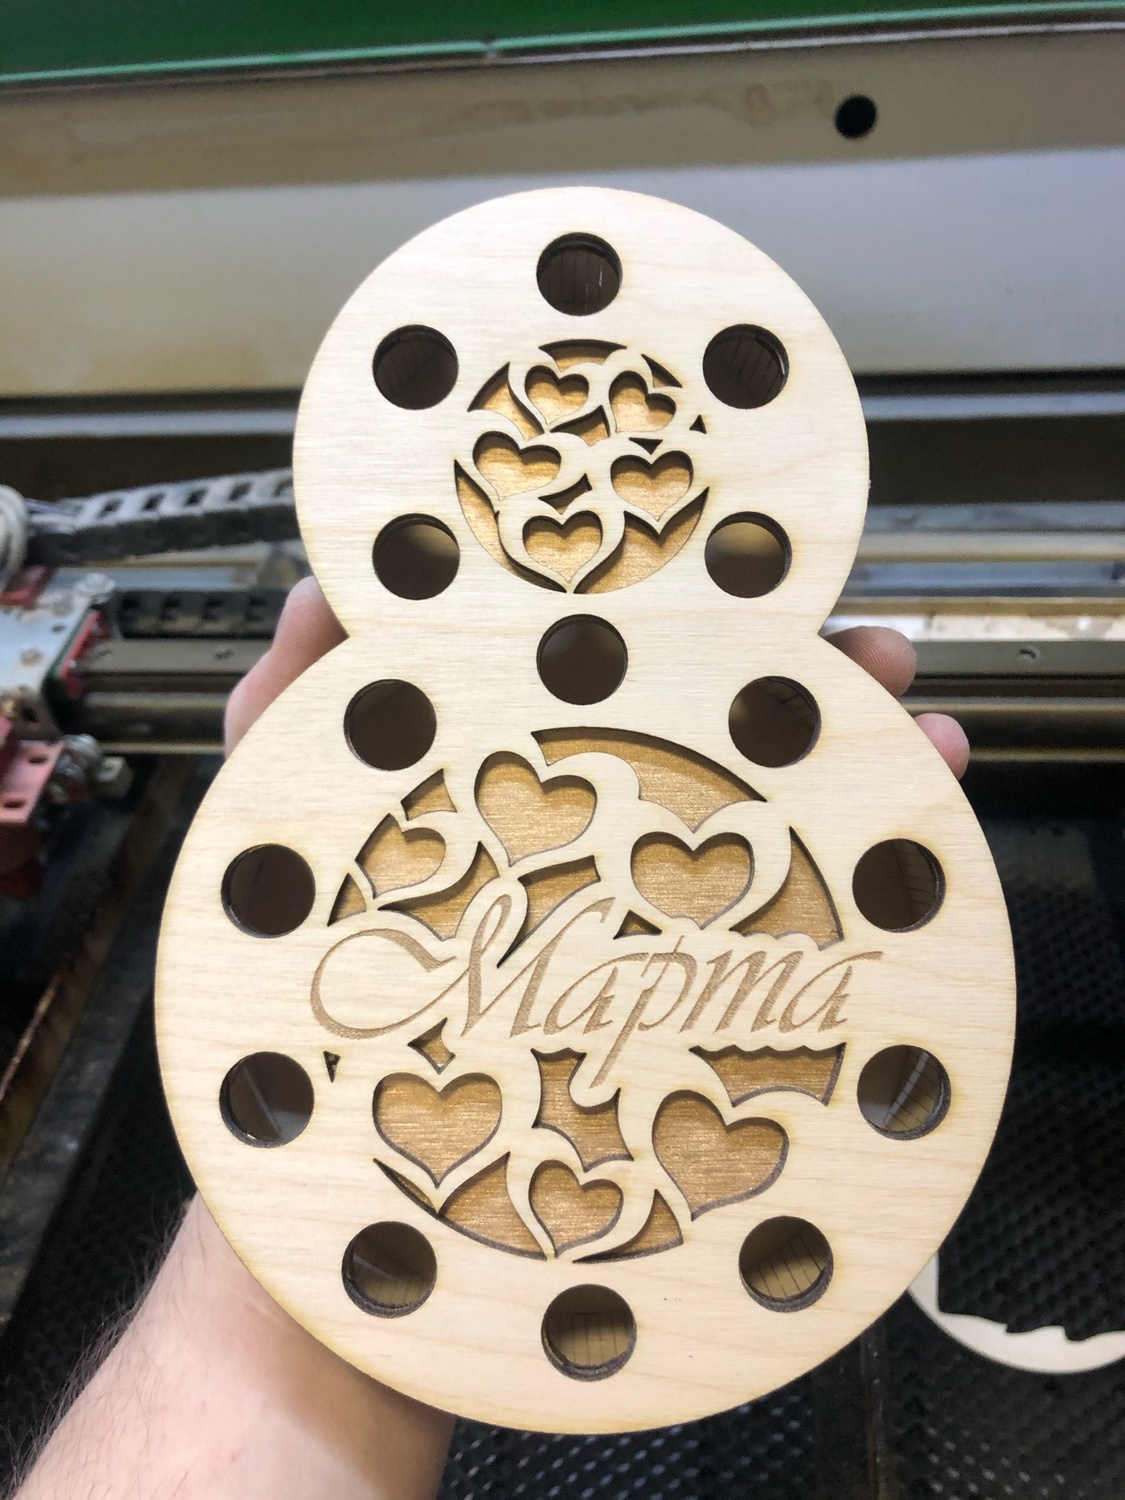 Laser Cut Womens Day 8 March Flower Box Free Vector